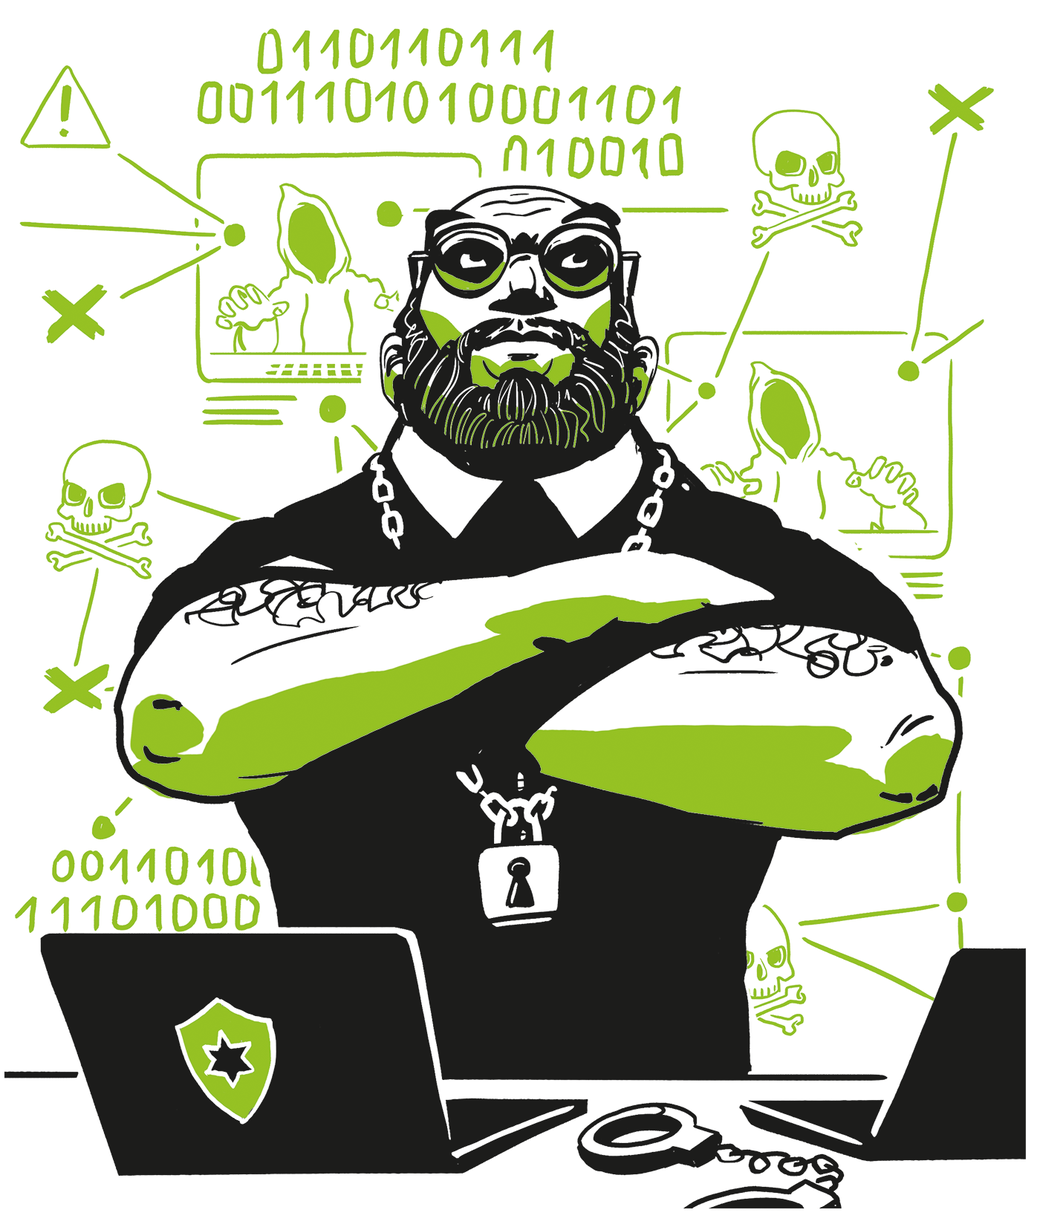 Characterillustration Cybersecurity